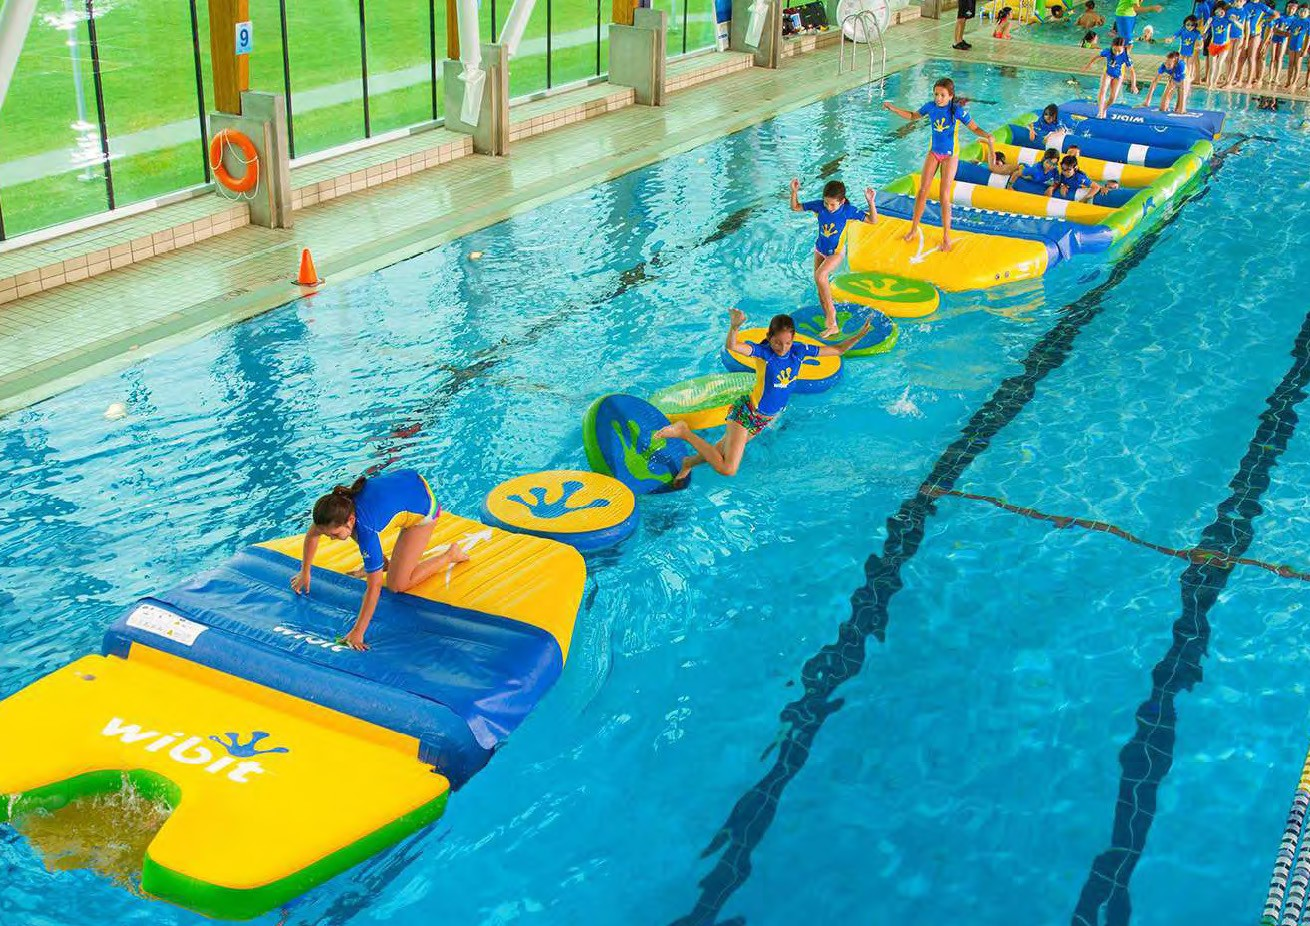 WAMPARK - Rental - Water Games - 2018_Page_1_Image_0001